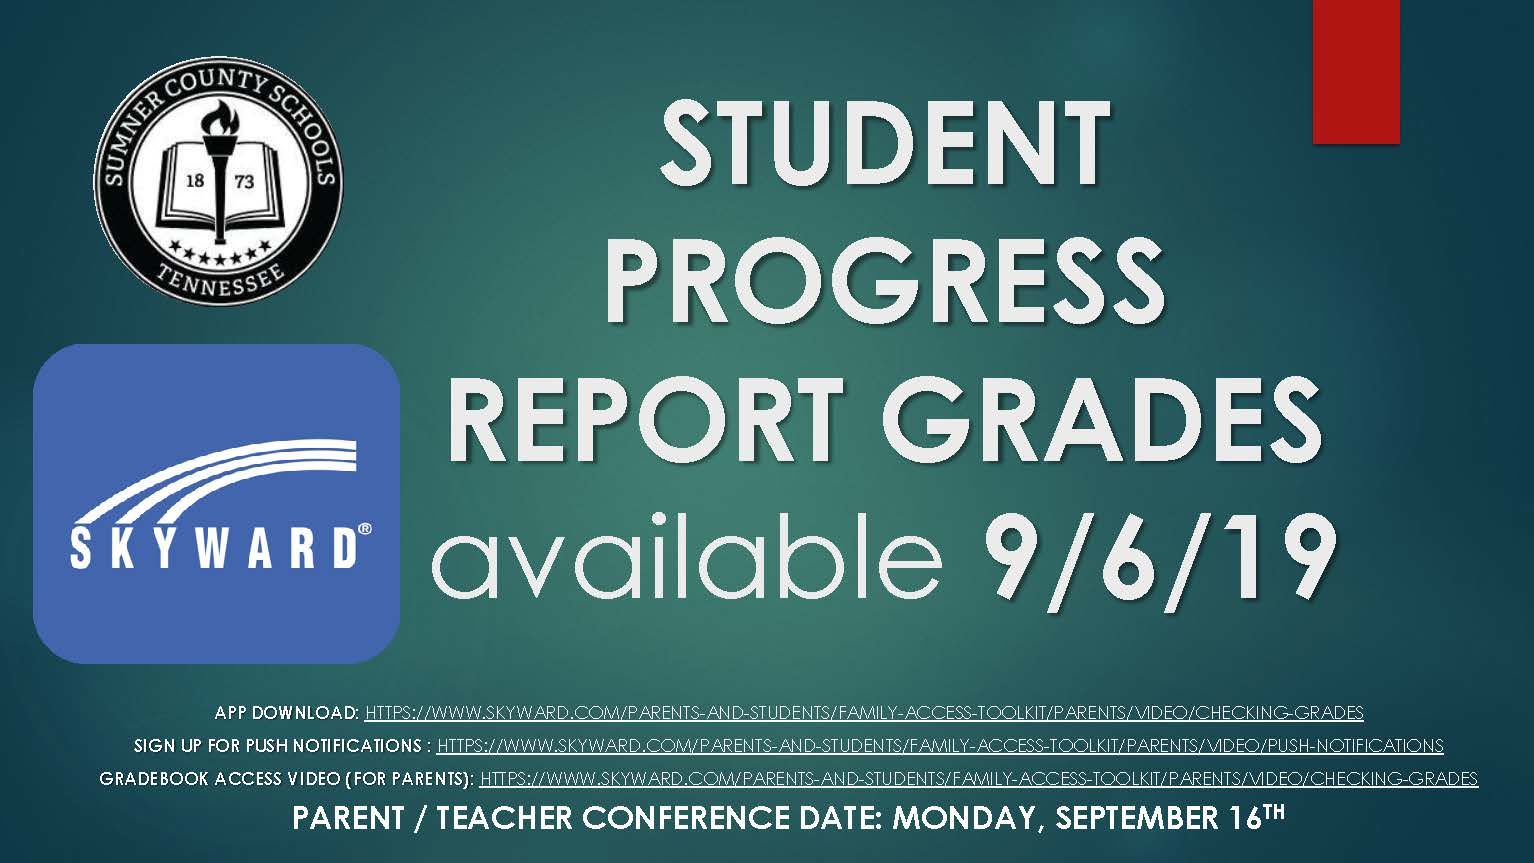 Student Progress Report Card Info 9.6.19